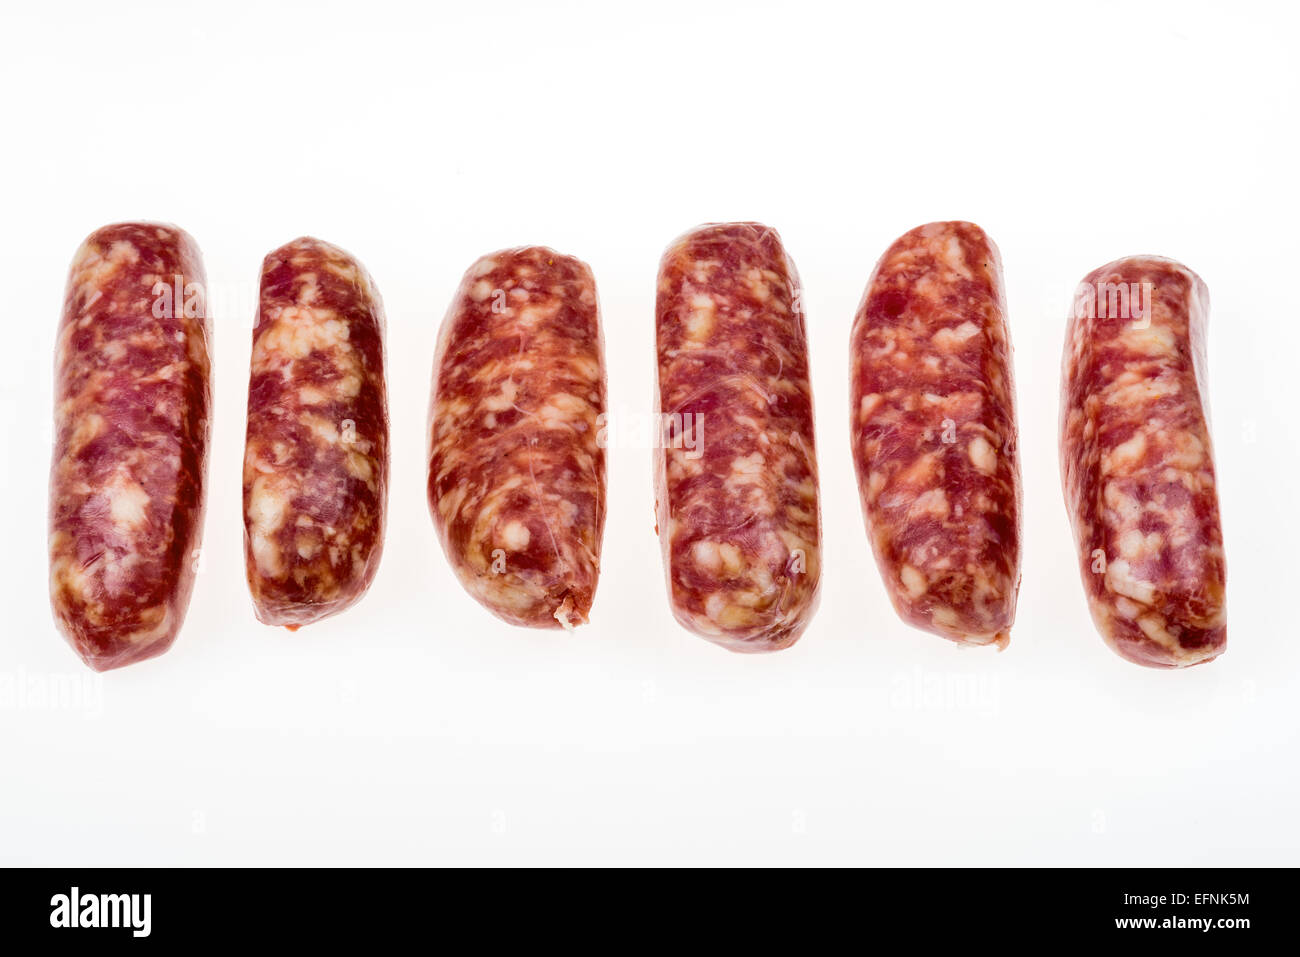 raw italian sausages made of wild boar pig fat, sausage meat FOOD delicate thin fat low fat low cholesterol specialty - Stock Image